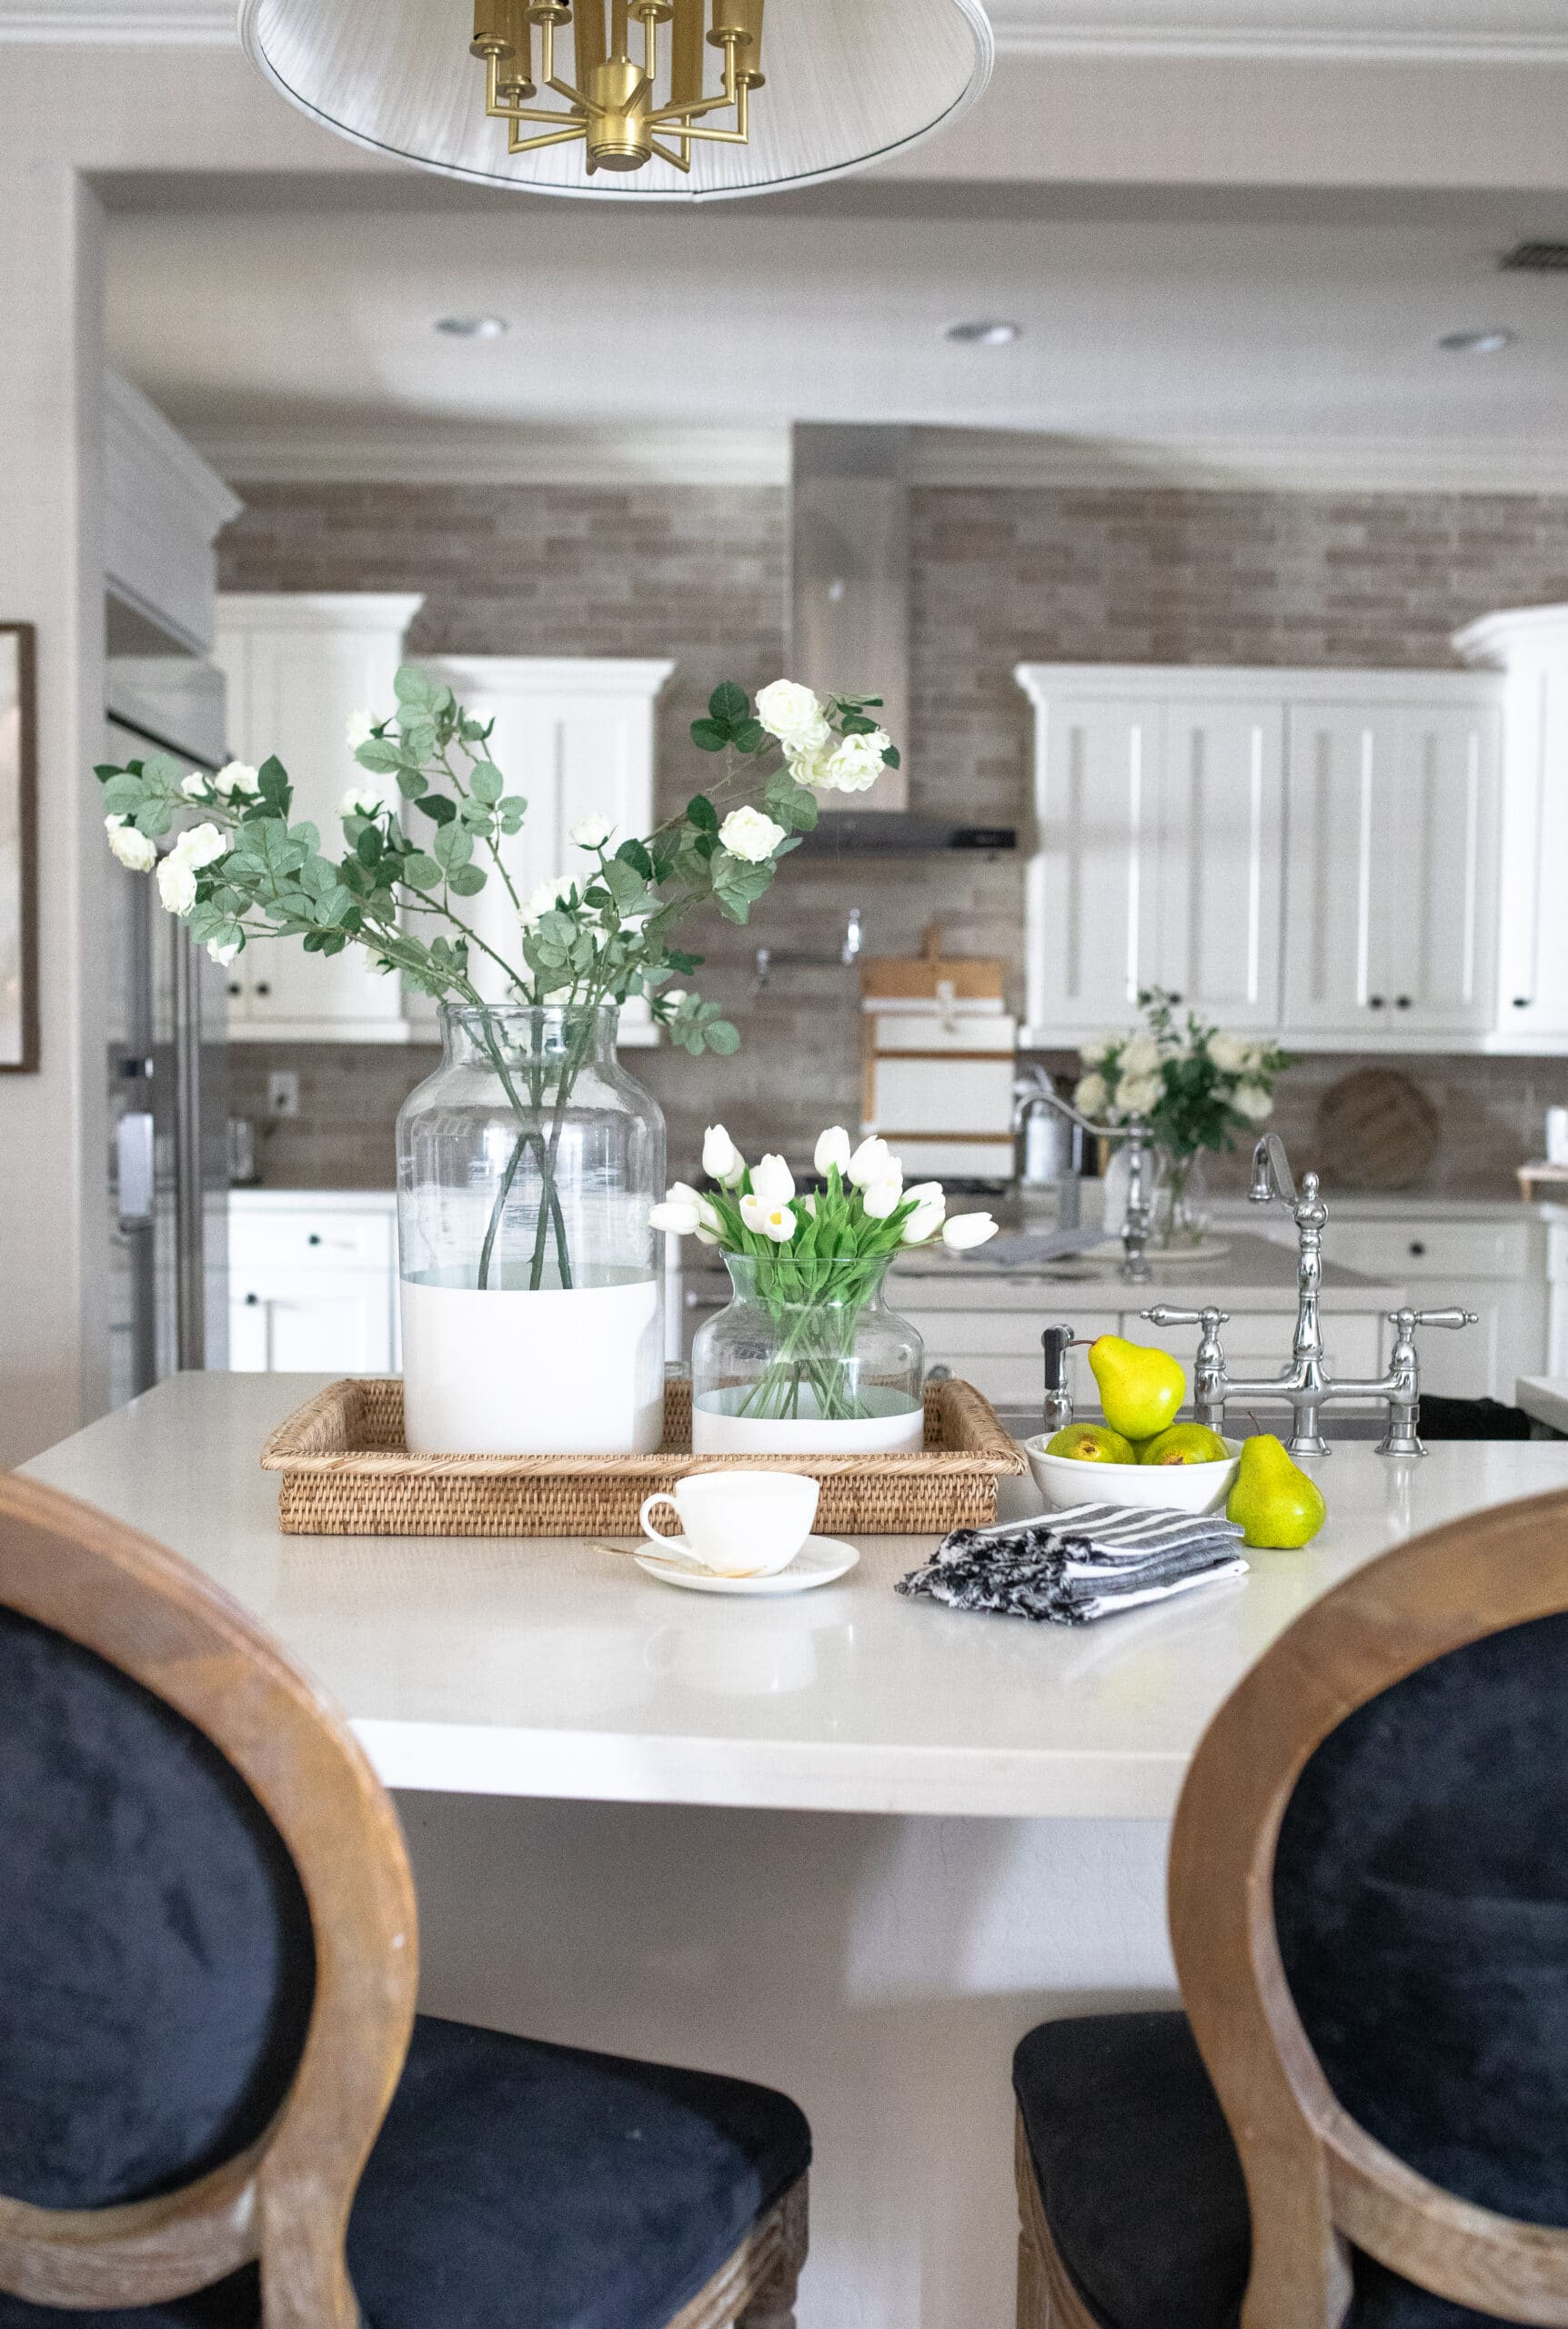 Kitchen Counter Styling with Flowers